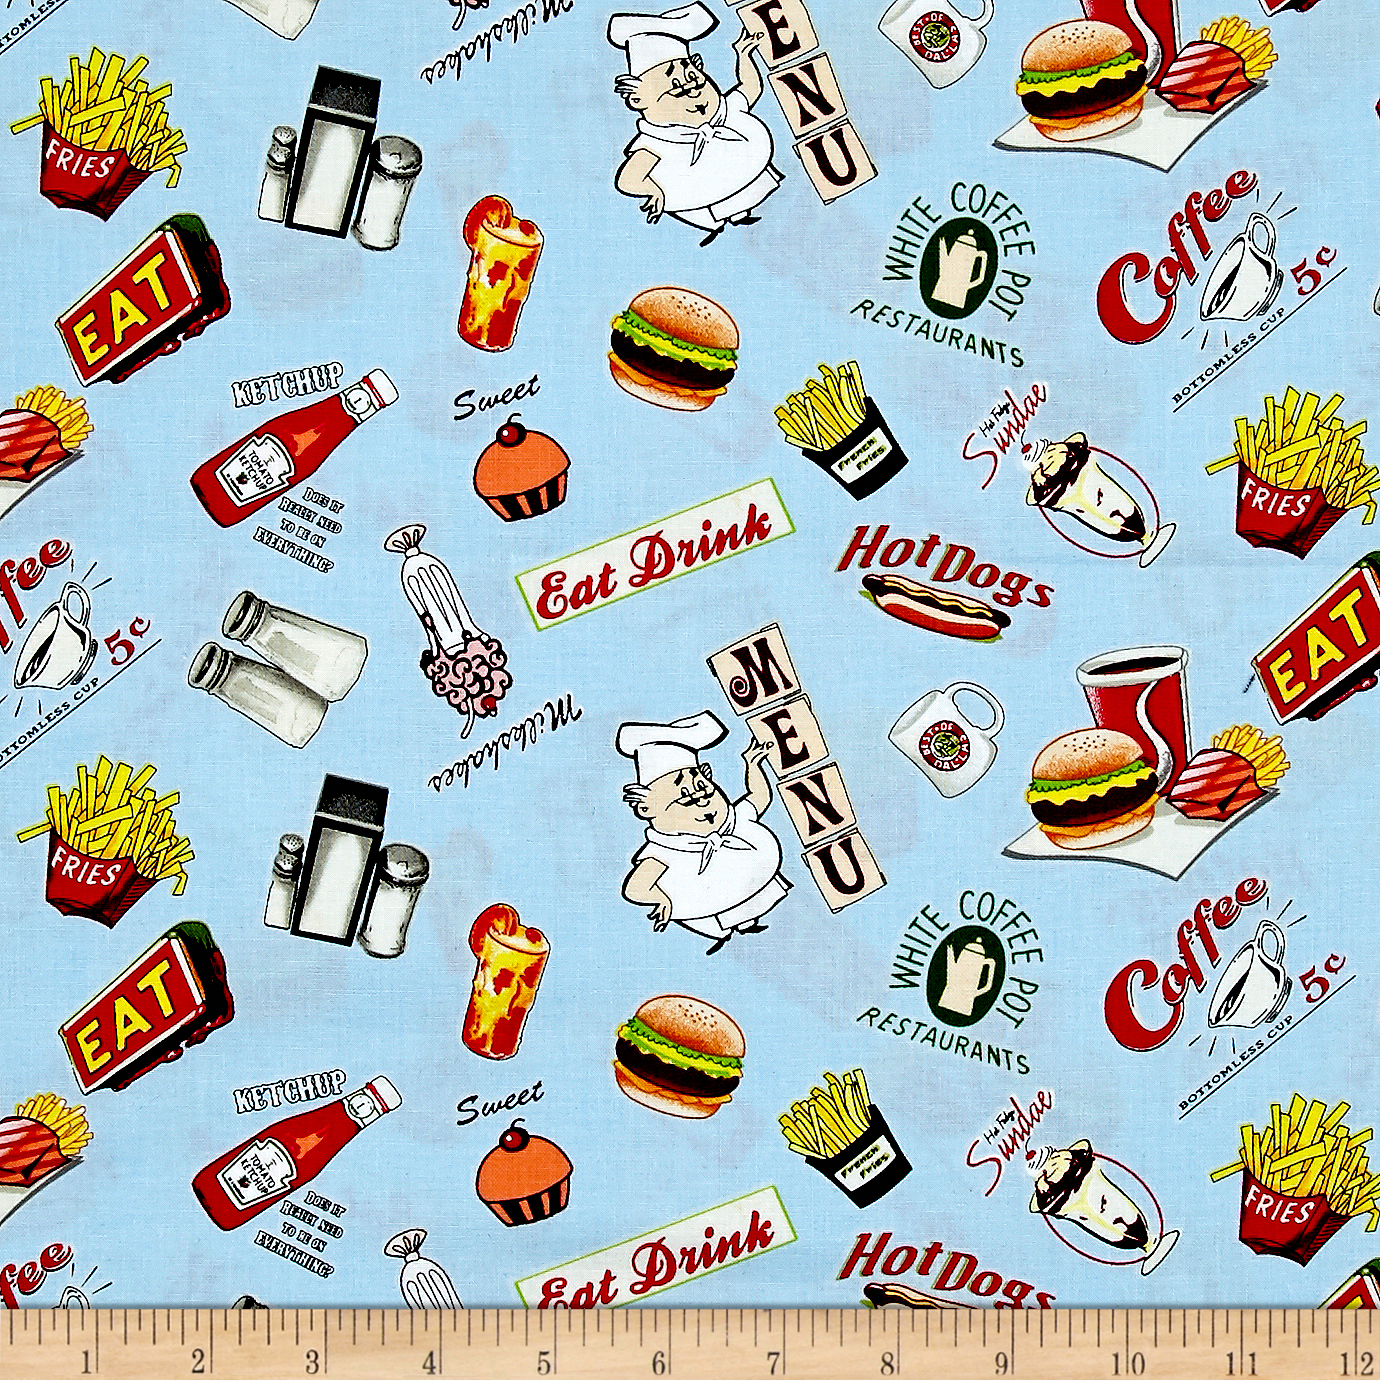 Open 24 Hours Food Allover Blue Fabric by Exclusively Quilters in USA